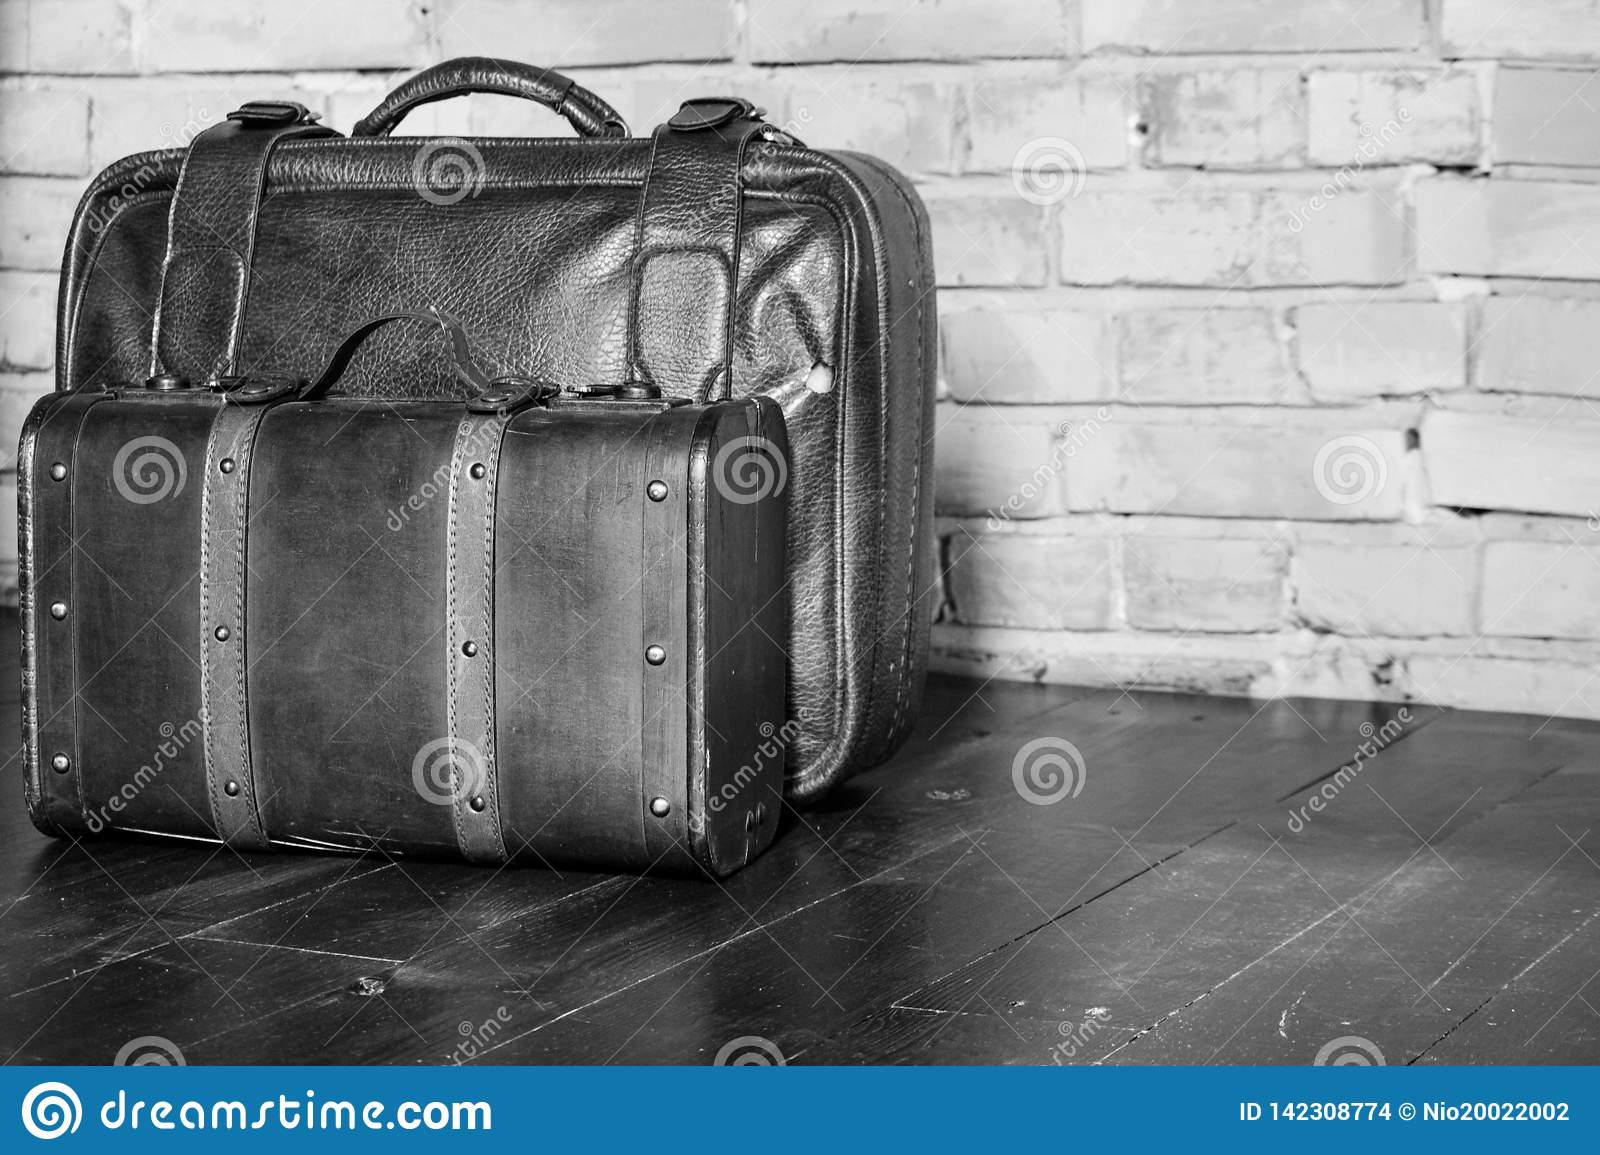 Two leather suitcases on brick wall black and white. Retro baggage design monochrome. Travel and tourism concept.